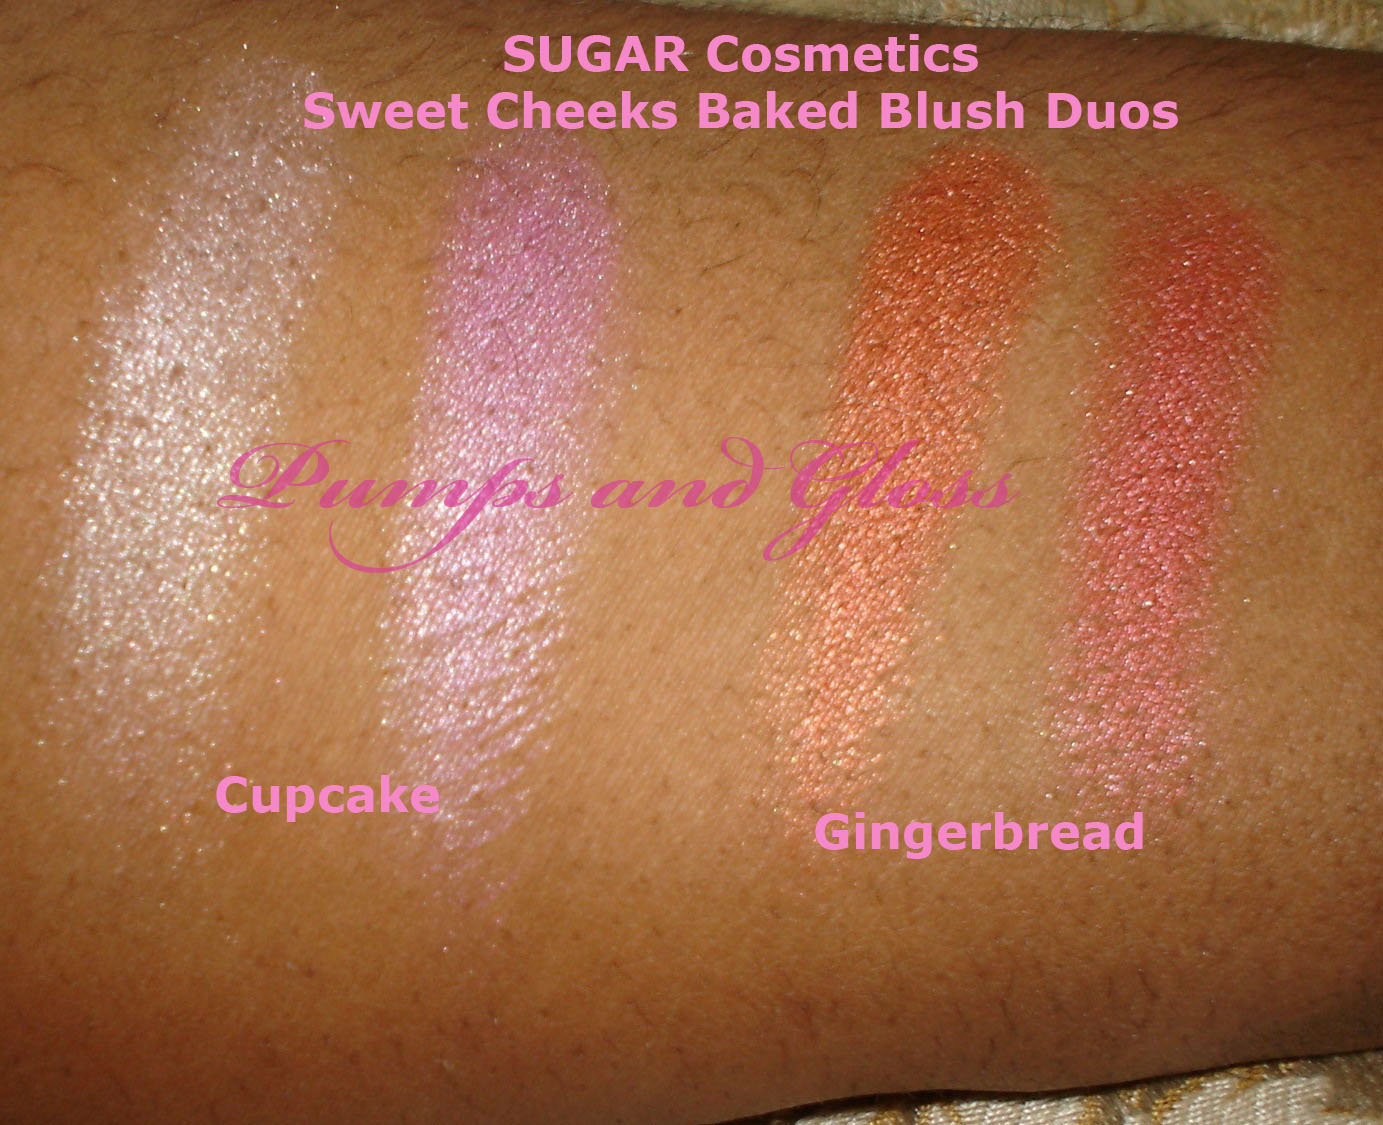 sugar-cosmetics-sweet-cheeks-baked-blush-duos2